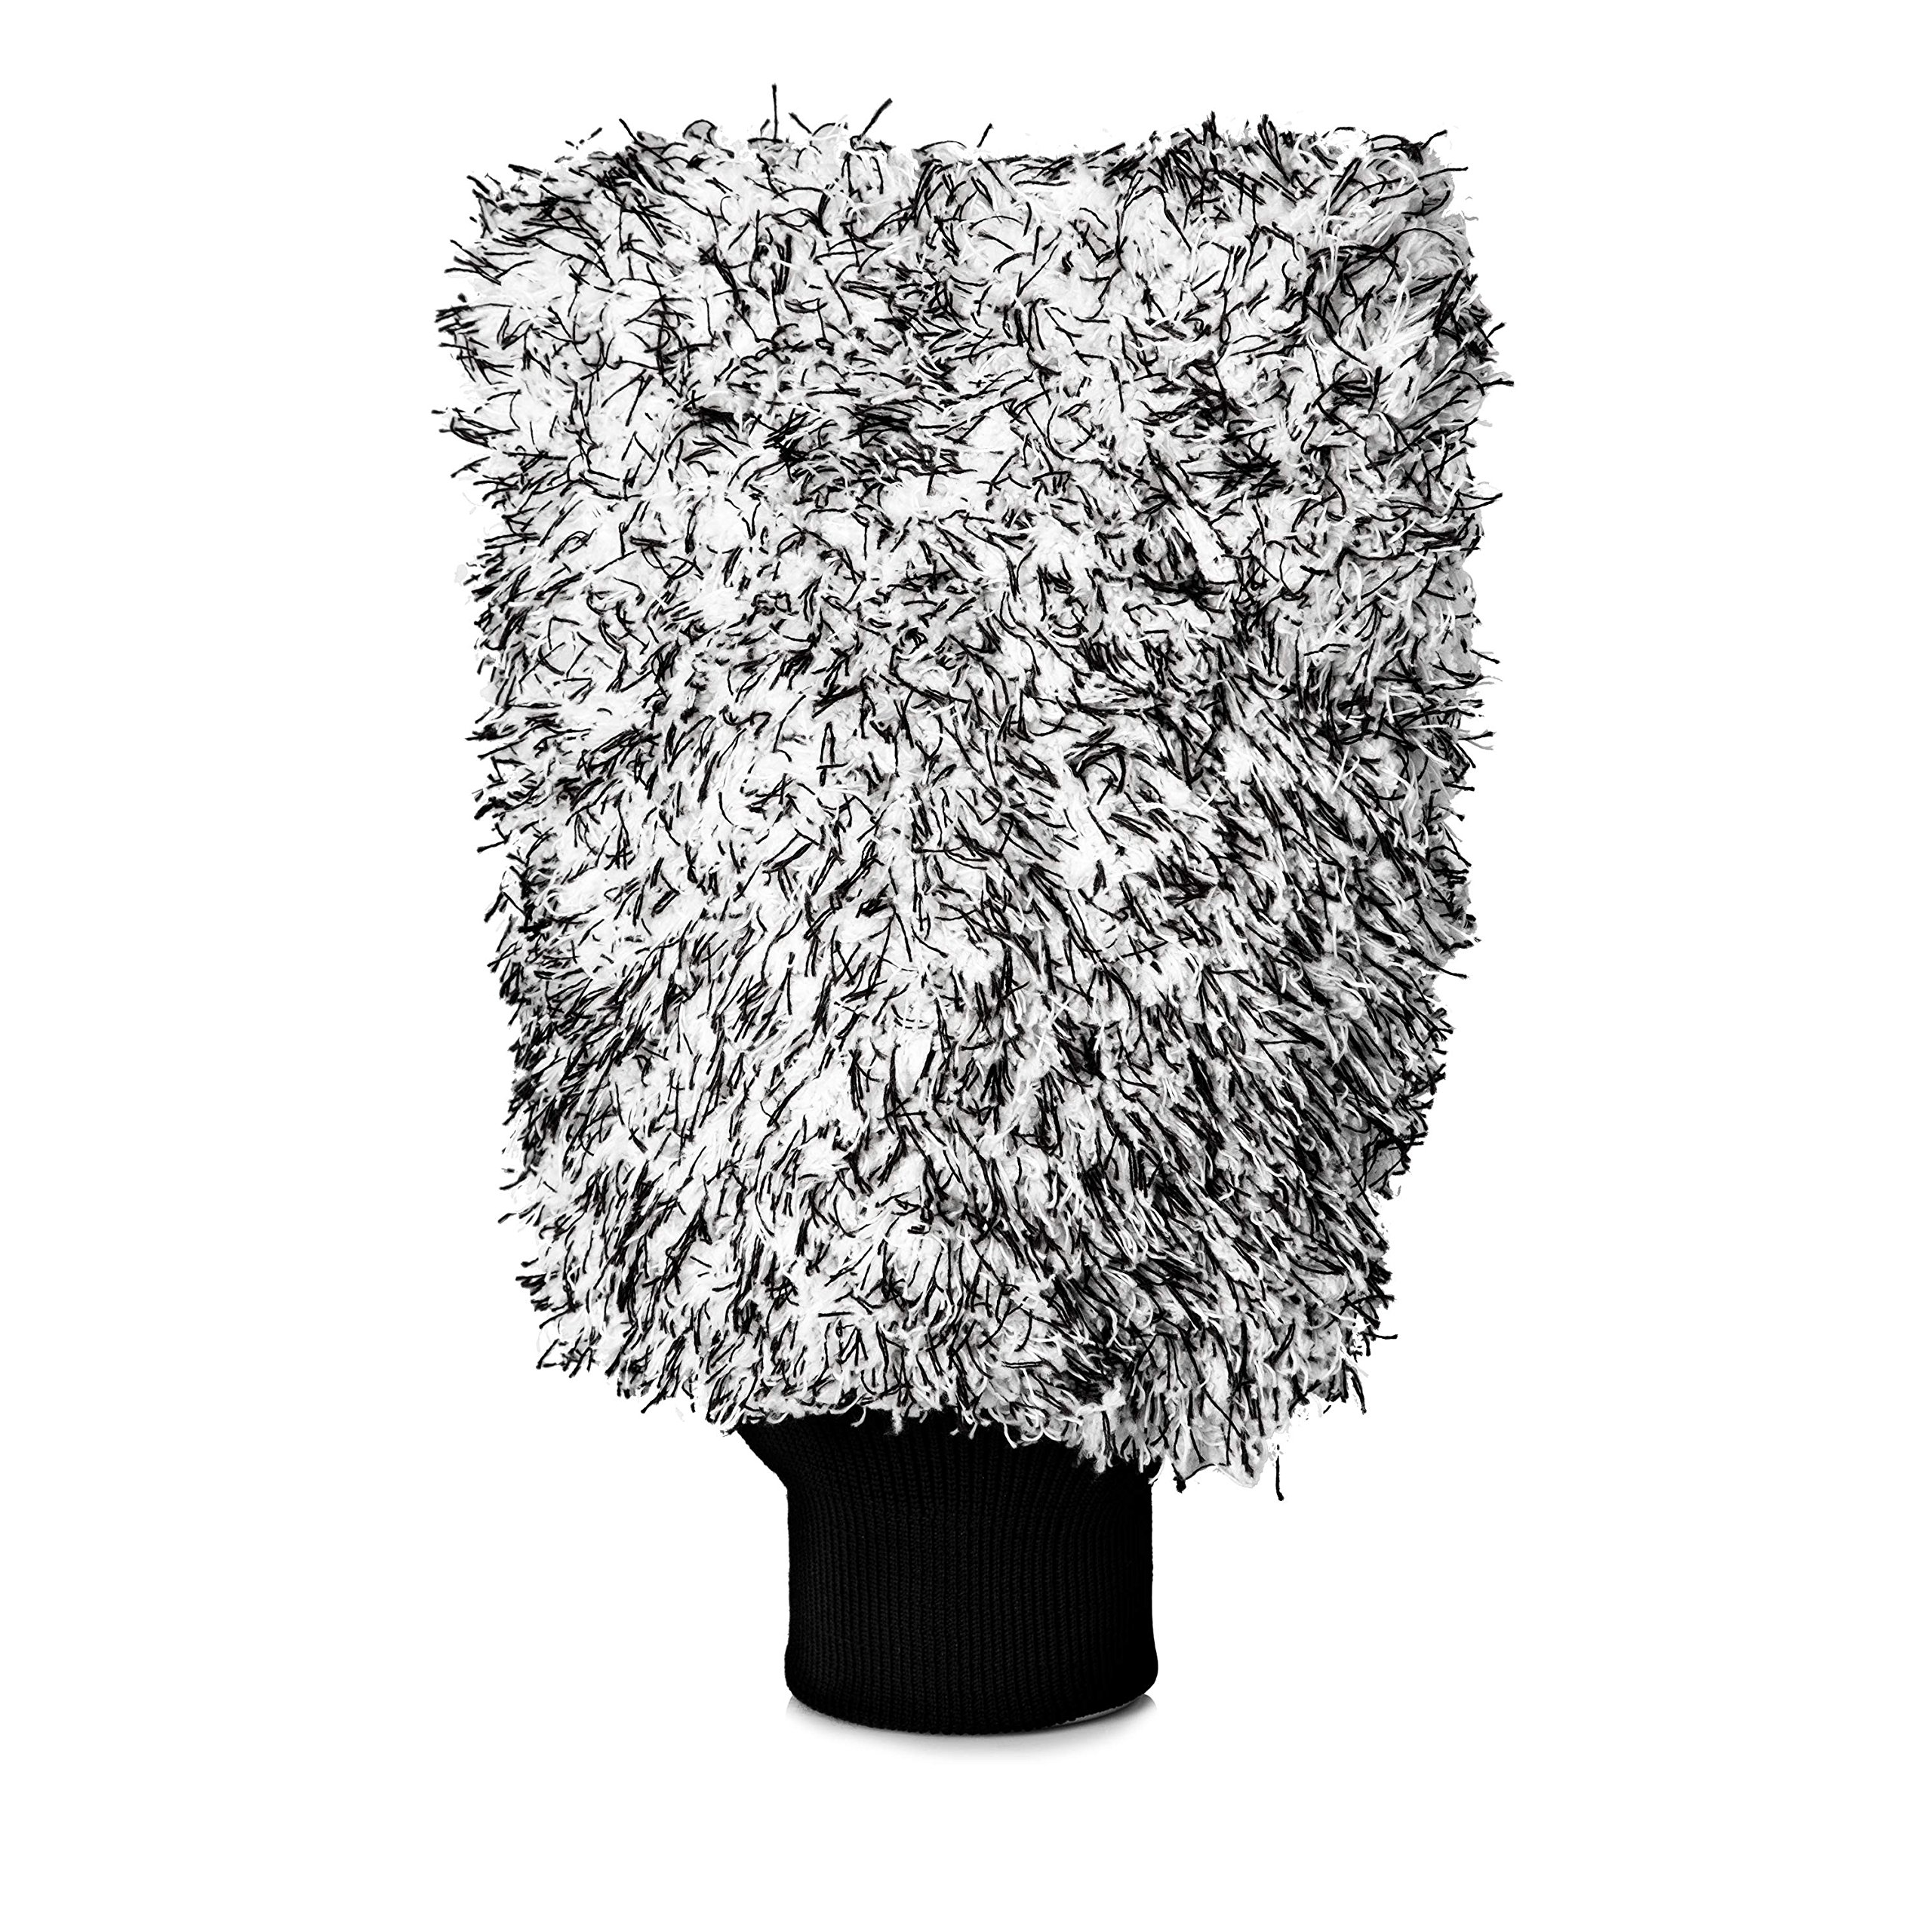 Adam's Microfiber Car Wash Mitt, Car Sponge Wrapped In Soft, Plush Fiber Cloth Material, Safe Washing With Any Car Soap, Bucket, Foam Gun, Foam Cannon, Other Cleaning Supplies